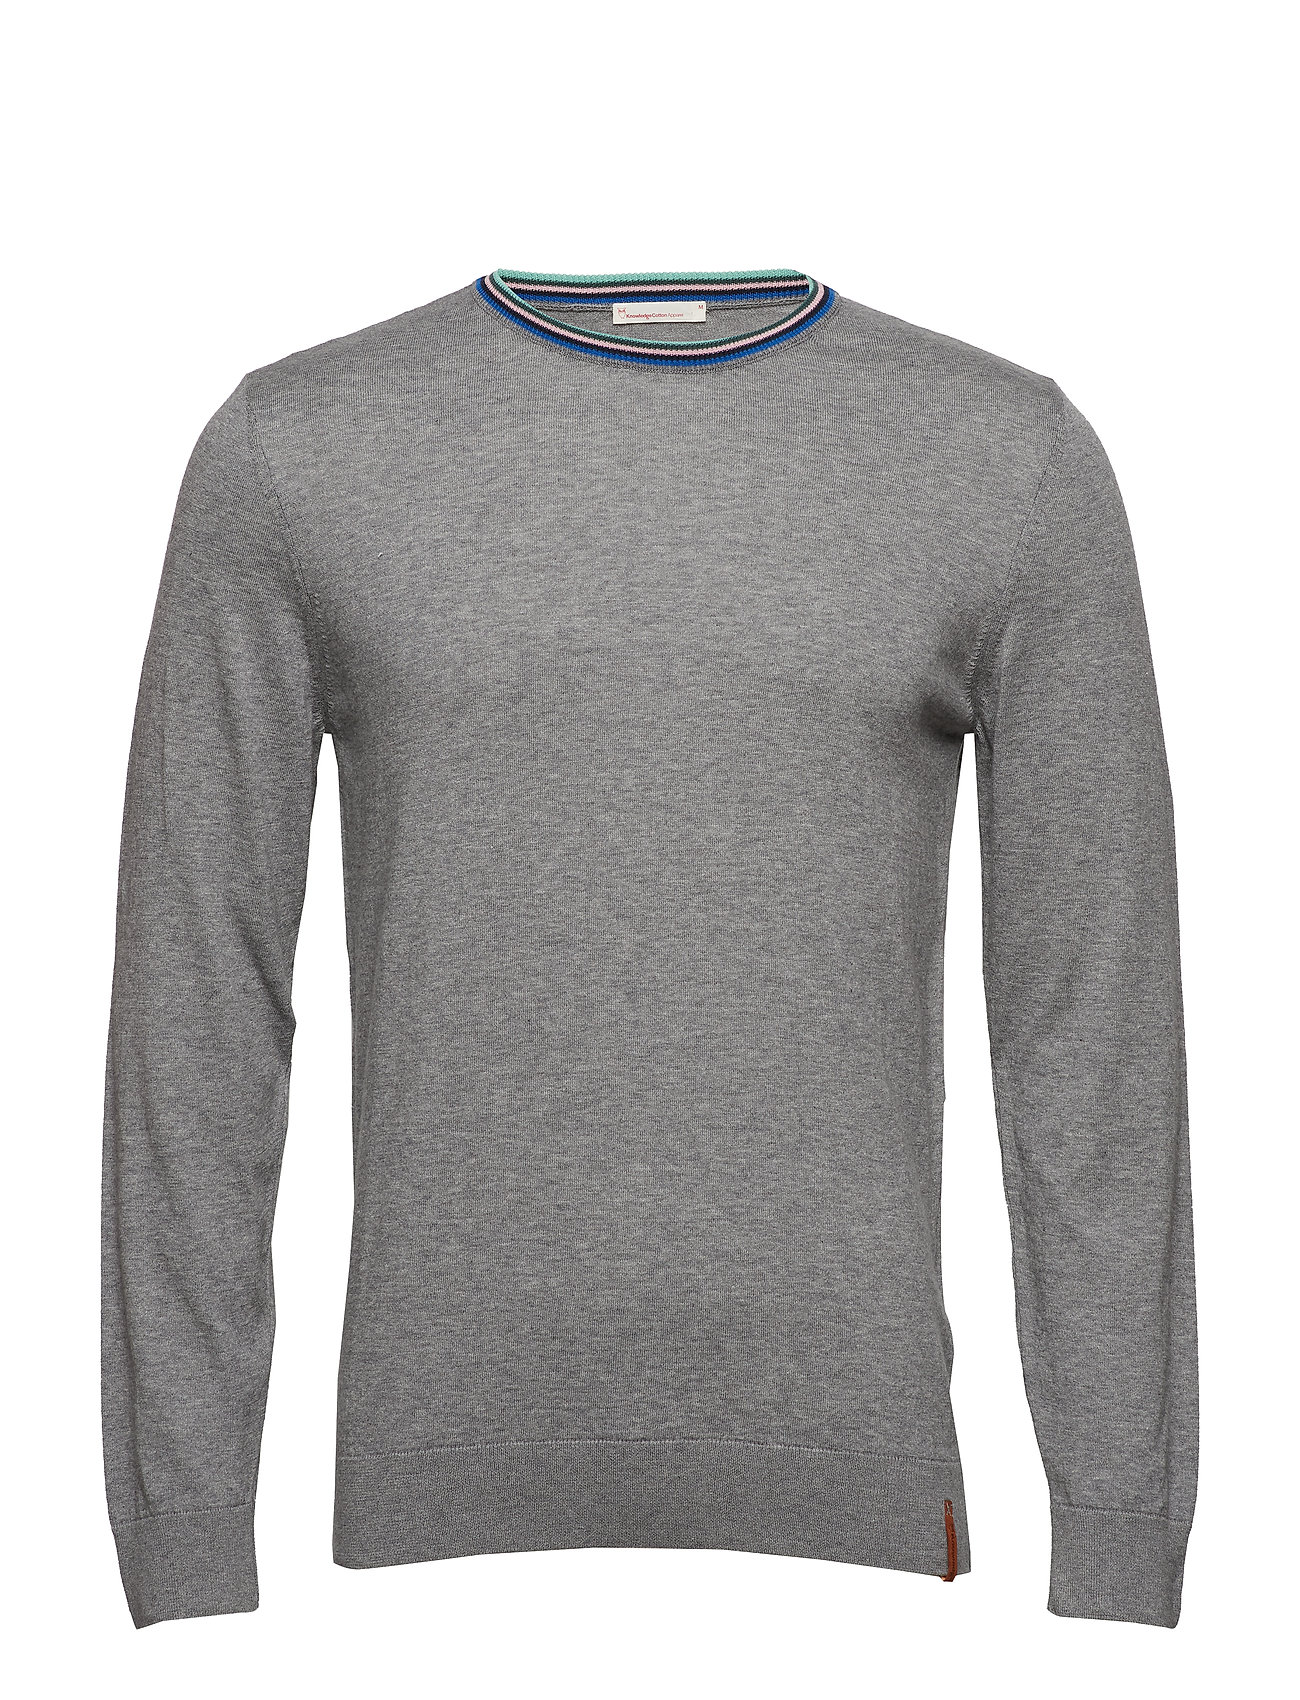 Knowledge Cotton Apparel O-neck knit light - contrast rib - - GREY MELANGE